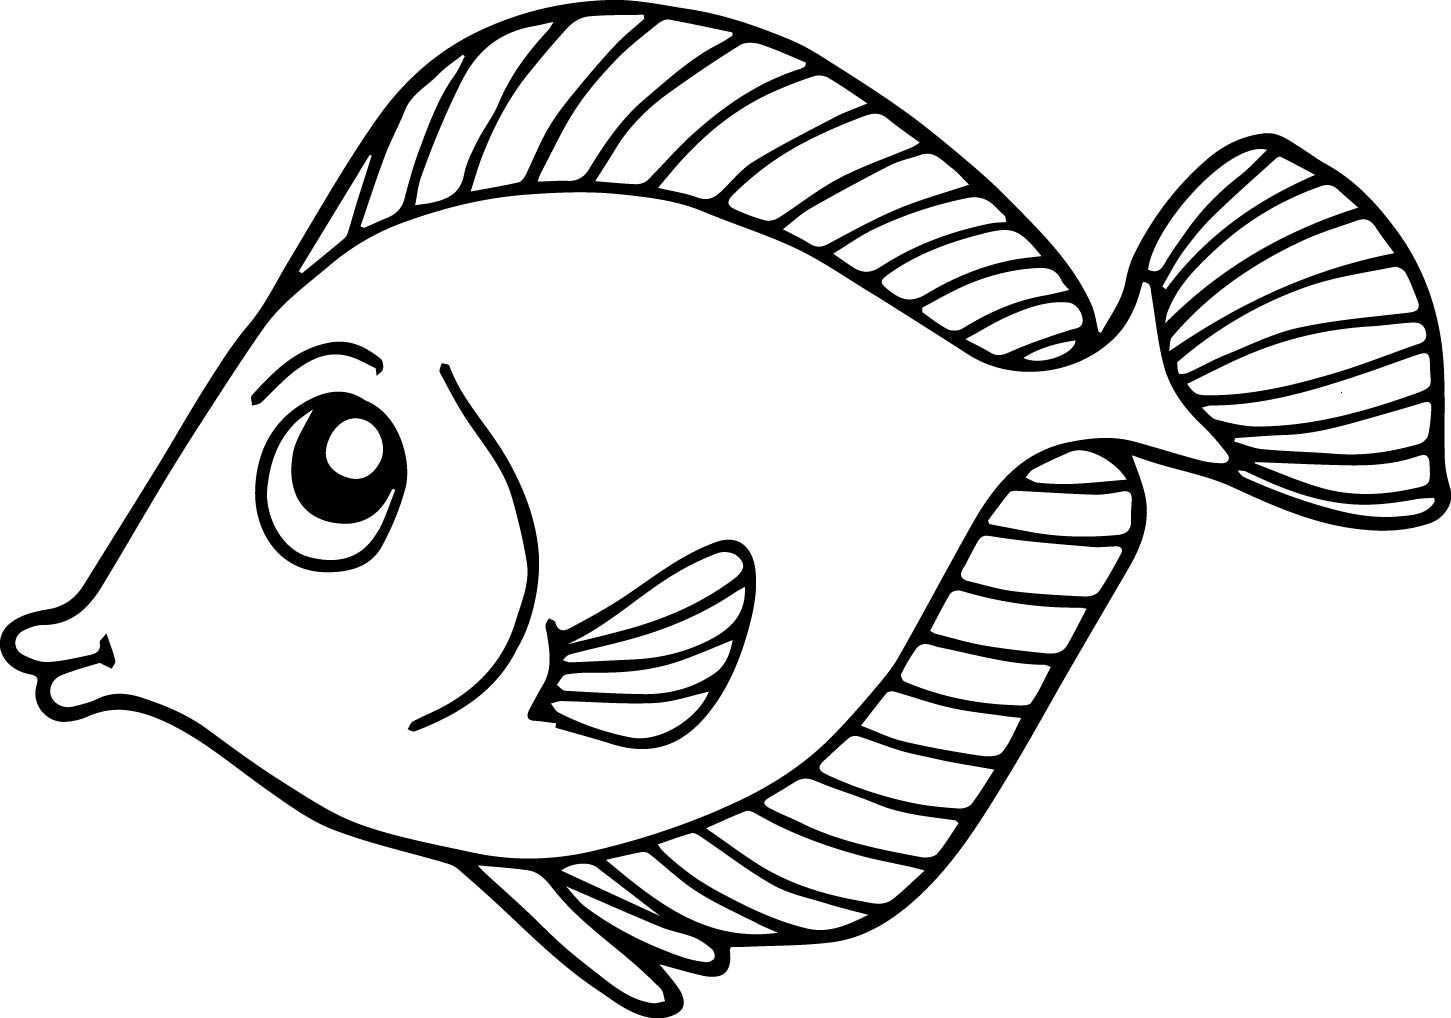 fish picture to color sea fish coloring pages download and print for free fish color picture to